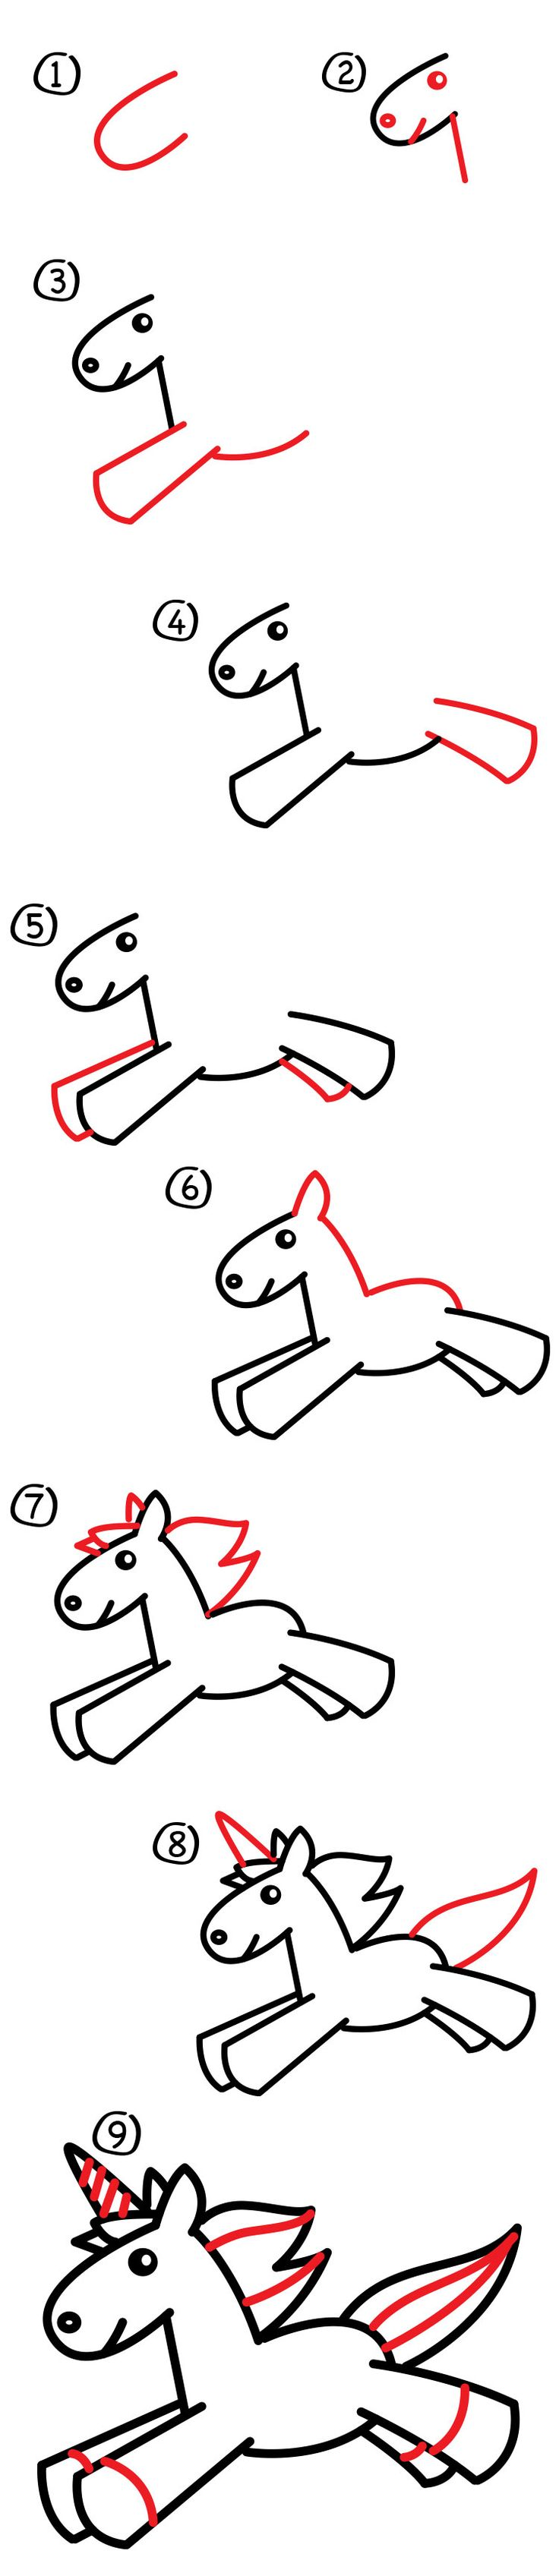 how to draw a unicorn for kids - Children Drawing Book Free Download